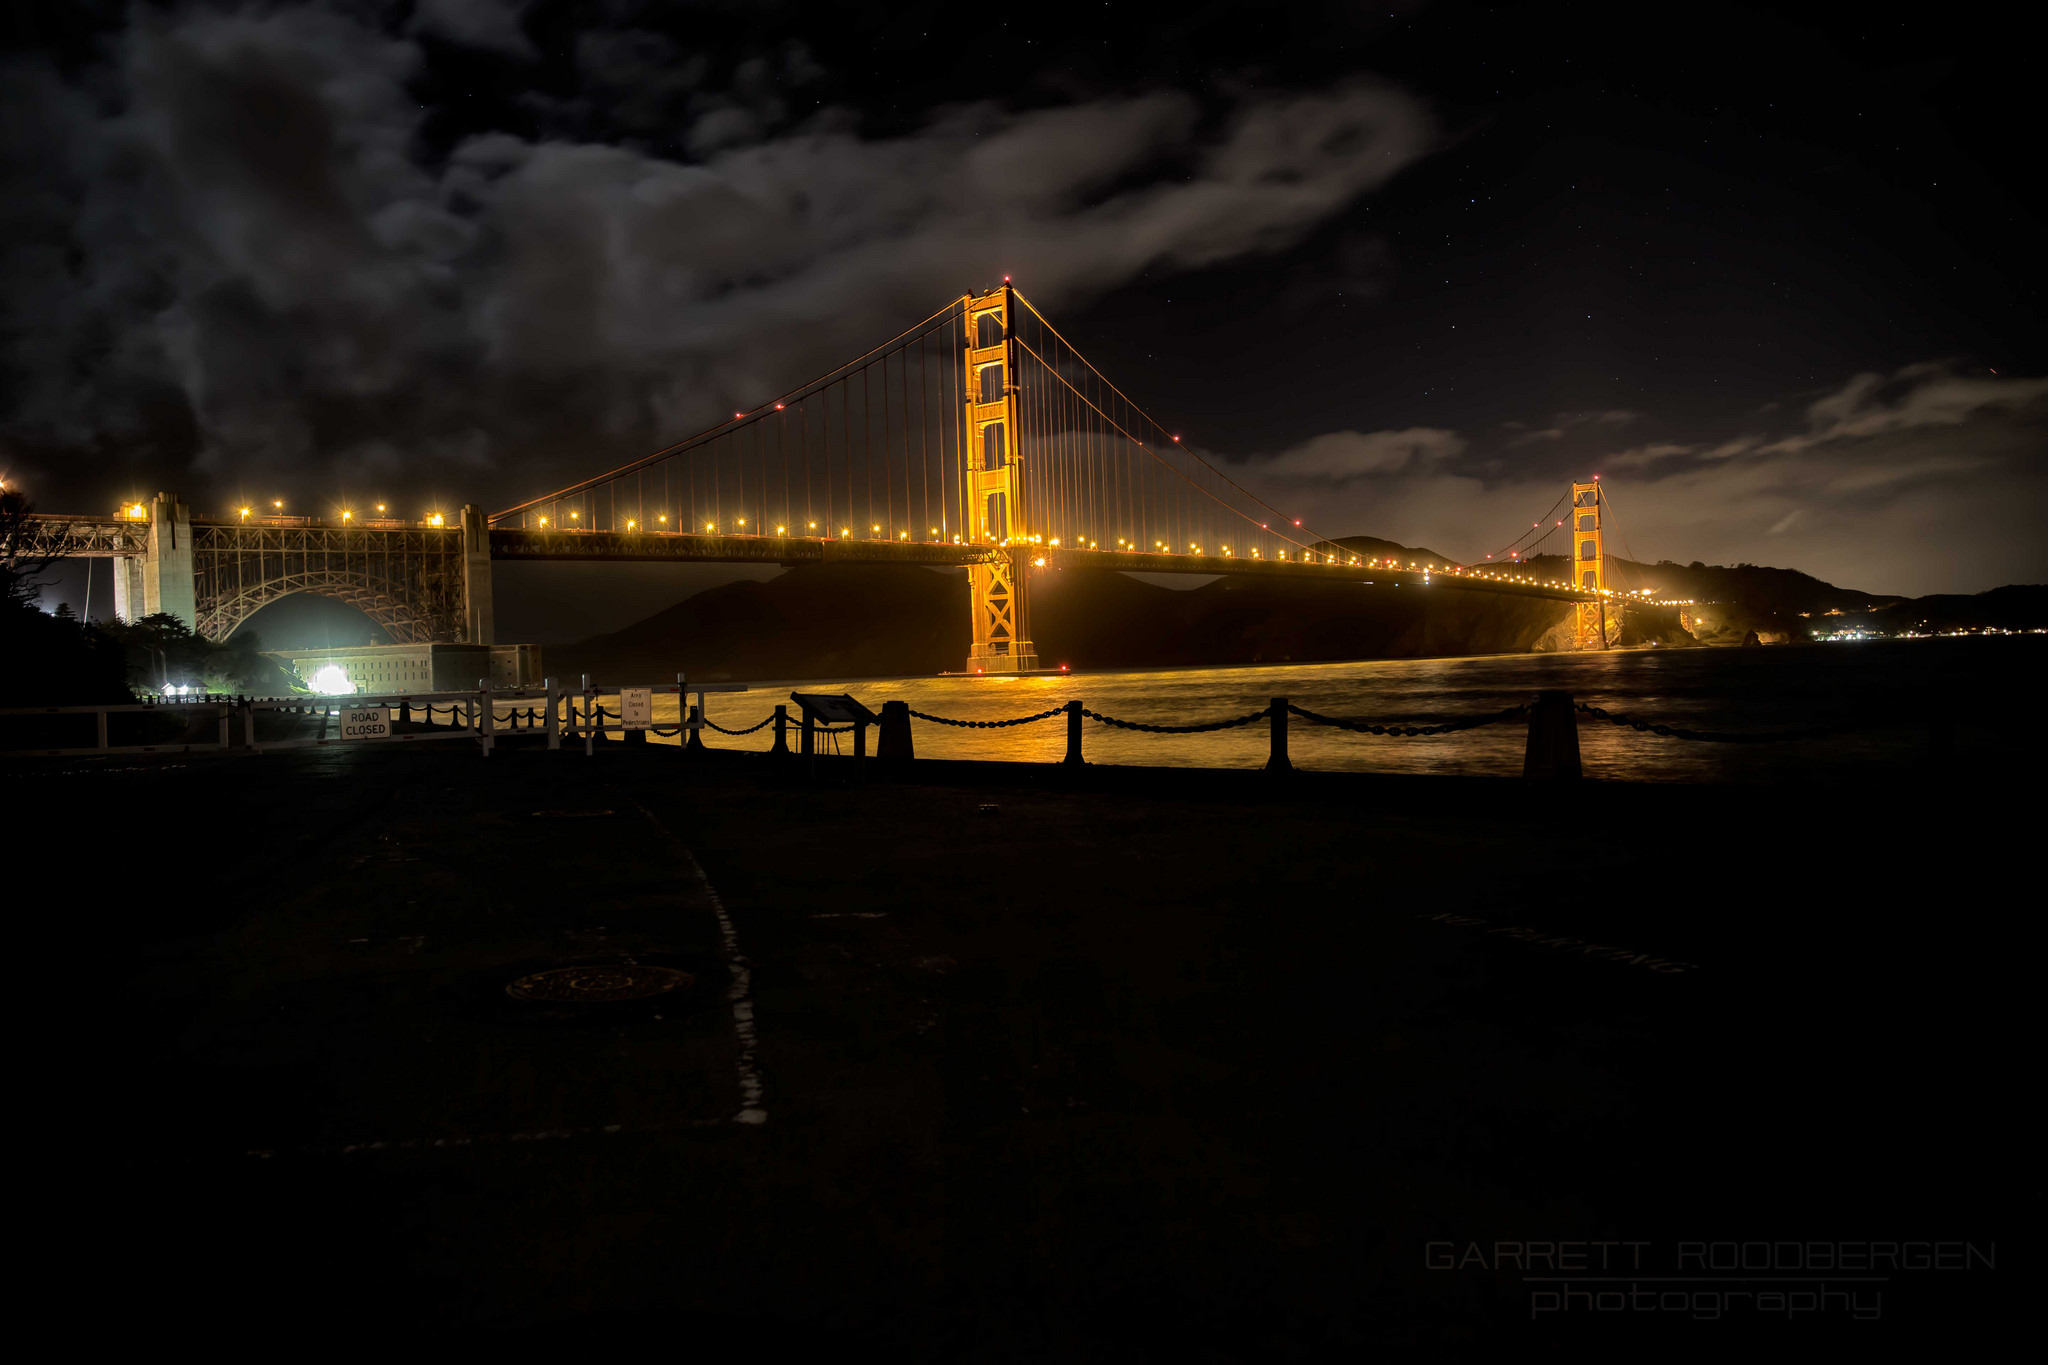 Golden Gate @night #photography #photographyislife #nightsky #water #gold #goldengate #goldwater #bridge #bay #sanfrancisco #travel #seetheworld #vacation #work #night #light #reflection #reflections #life #seek #see #distract #find #view